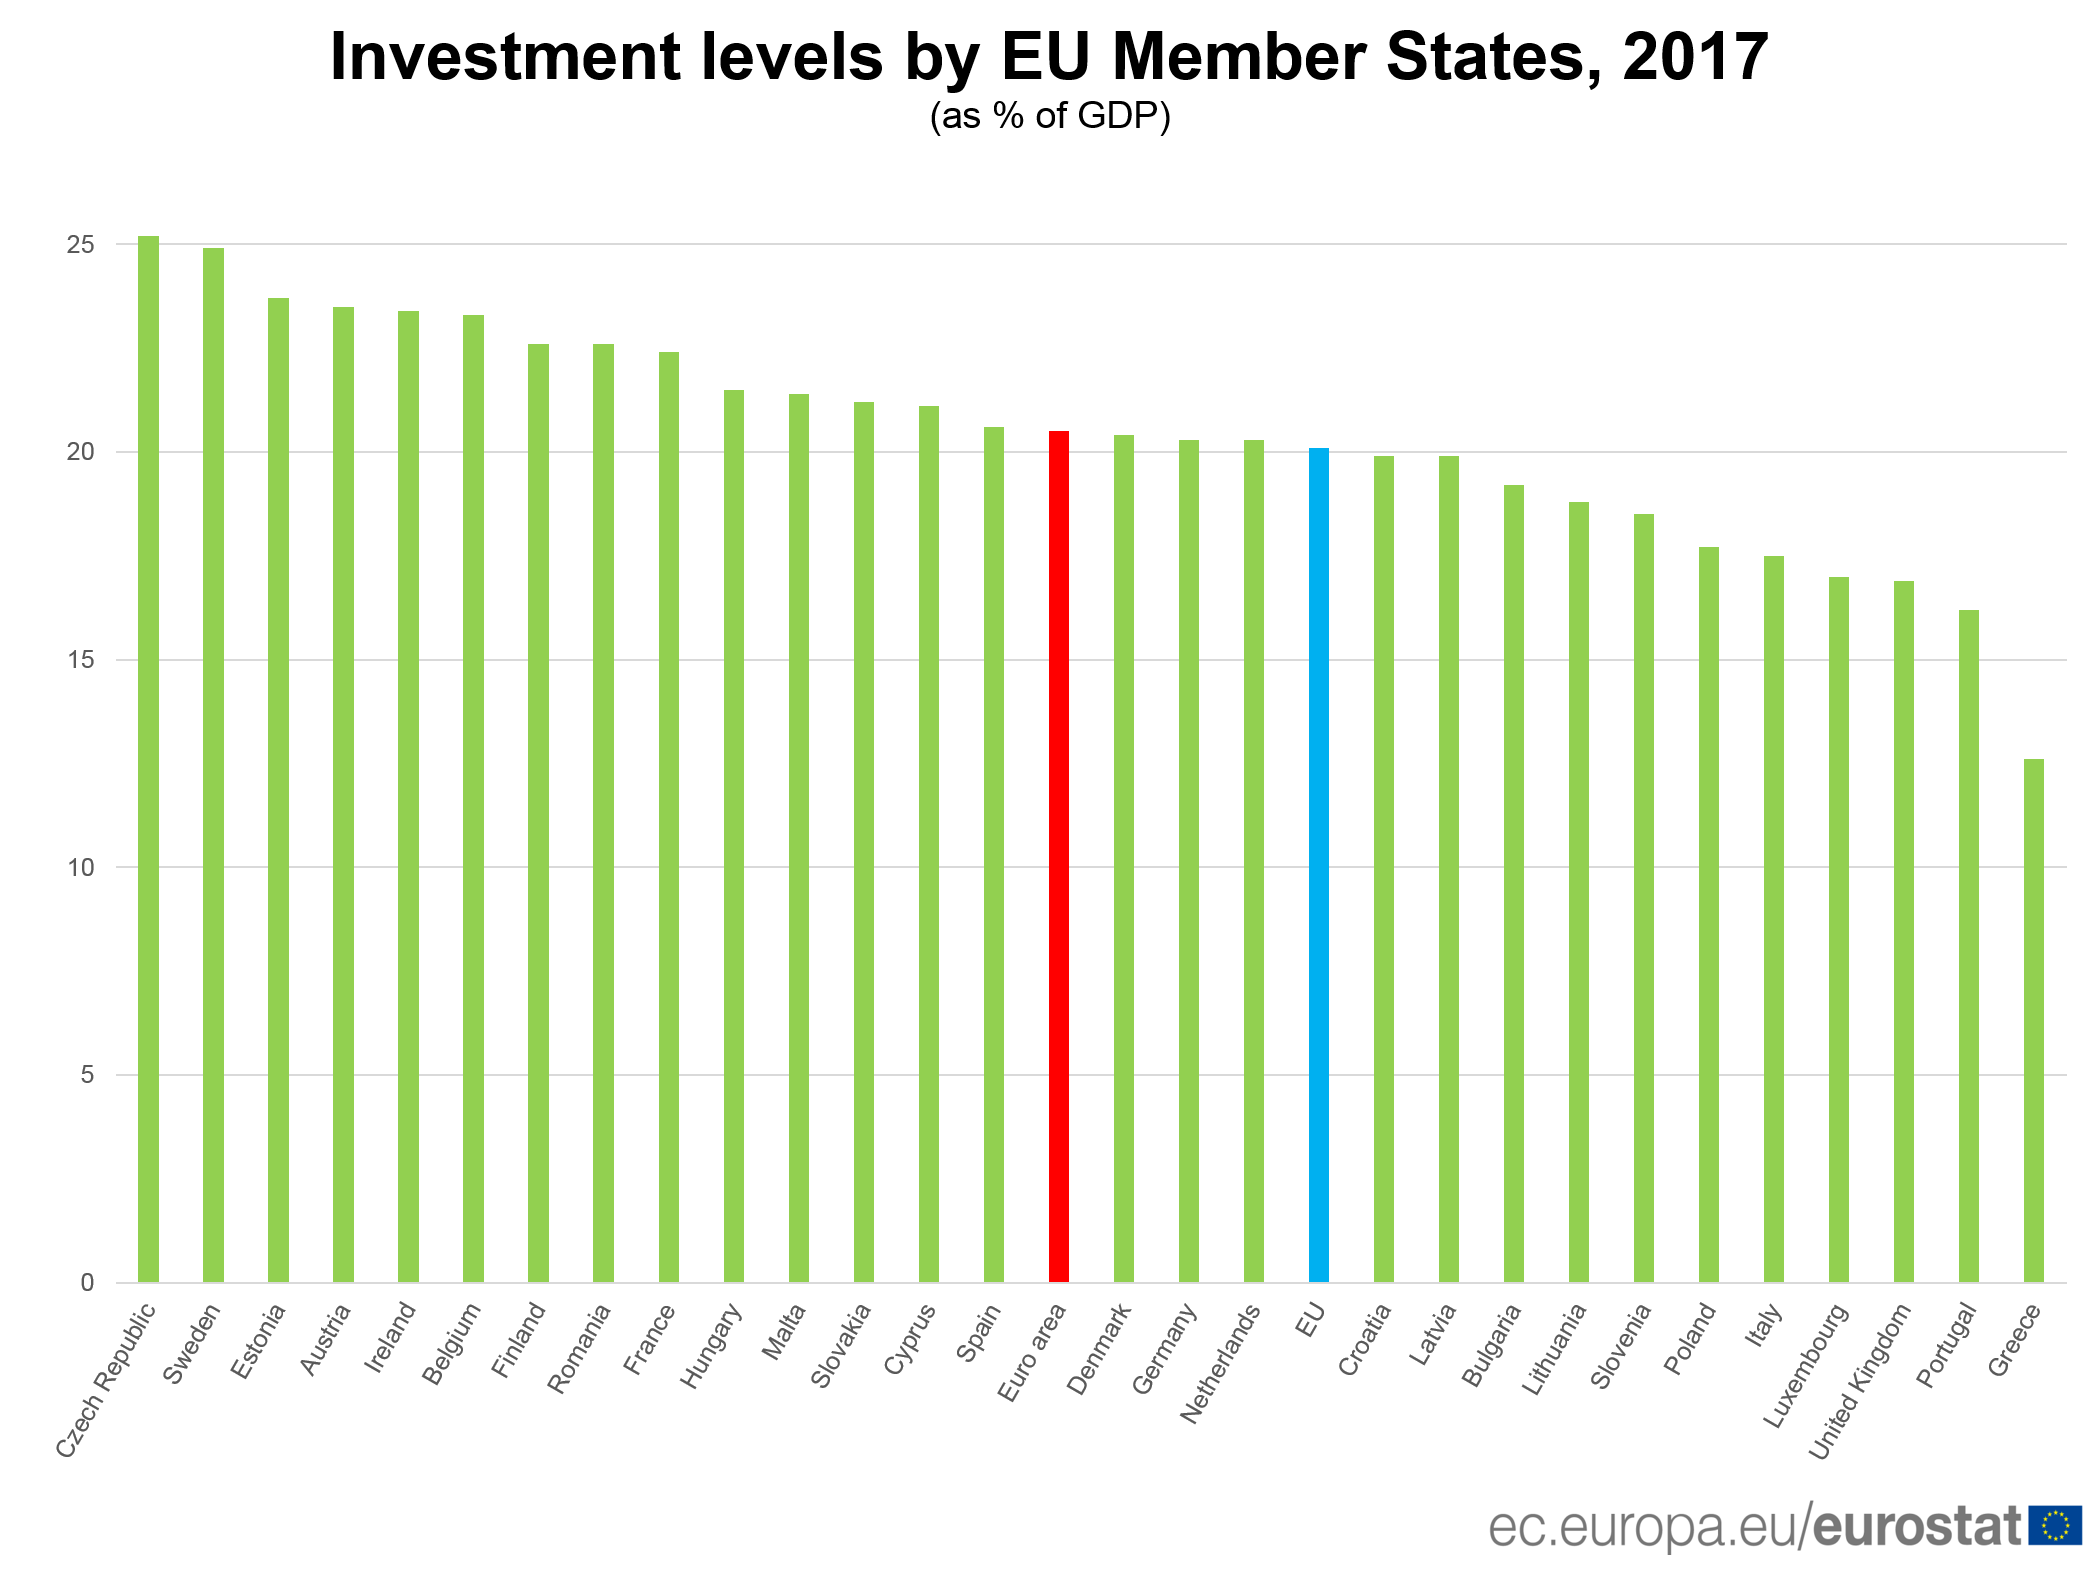 Investment levels by EU Member States